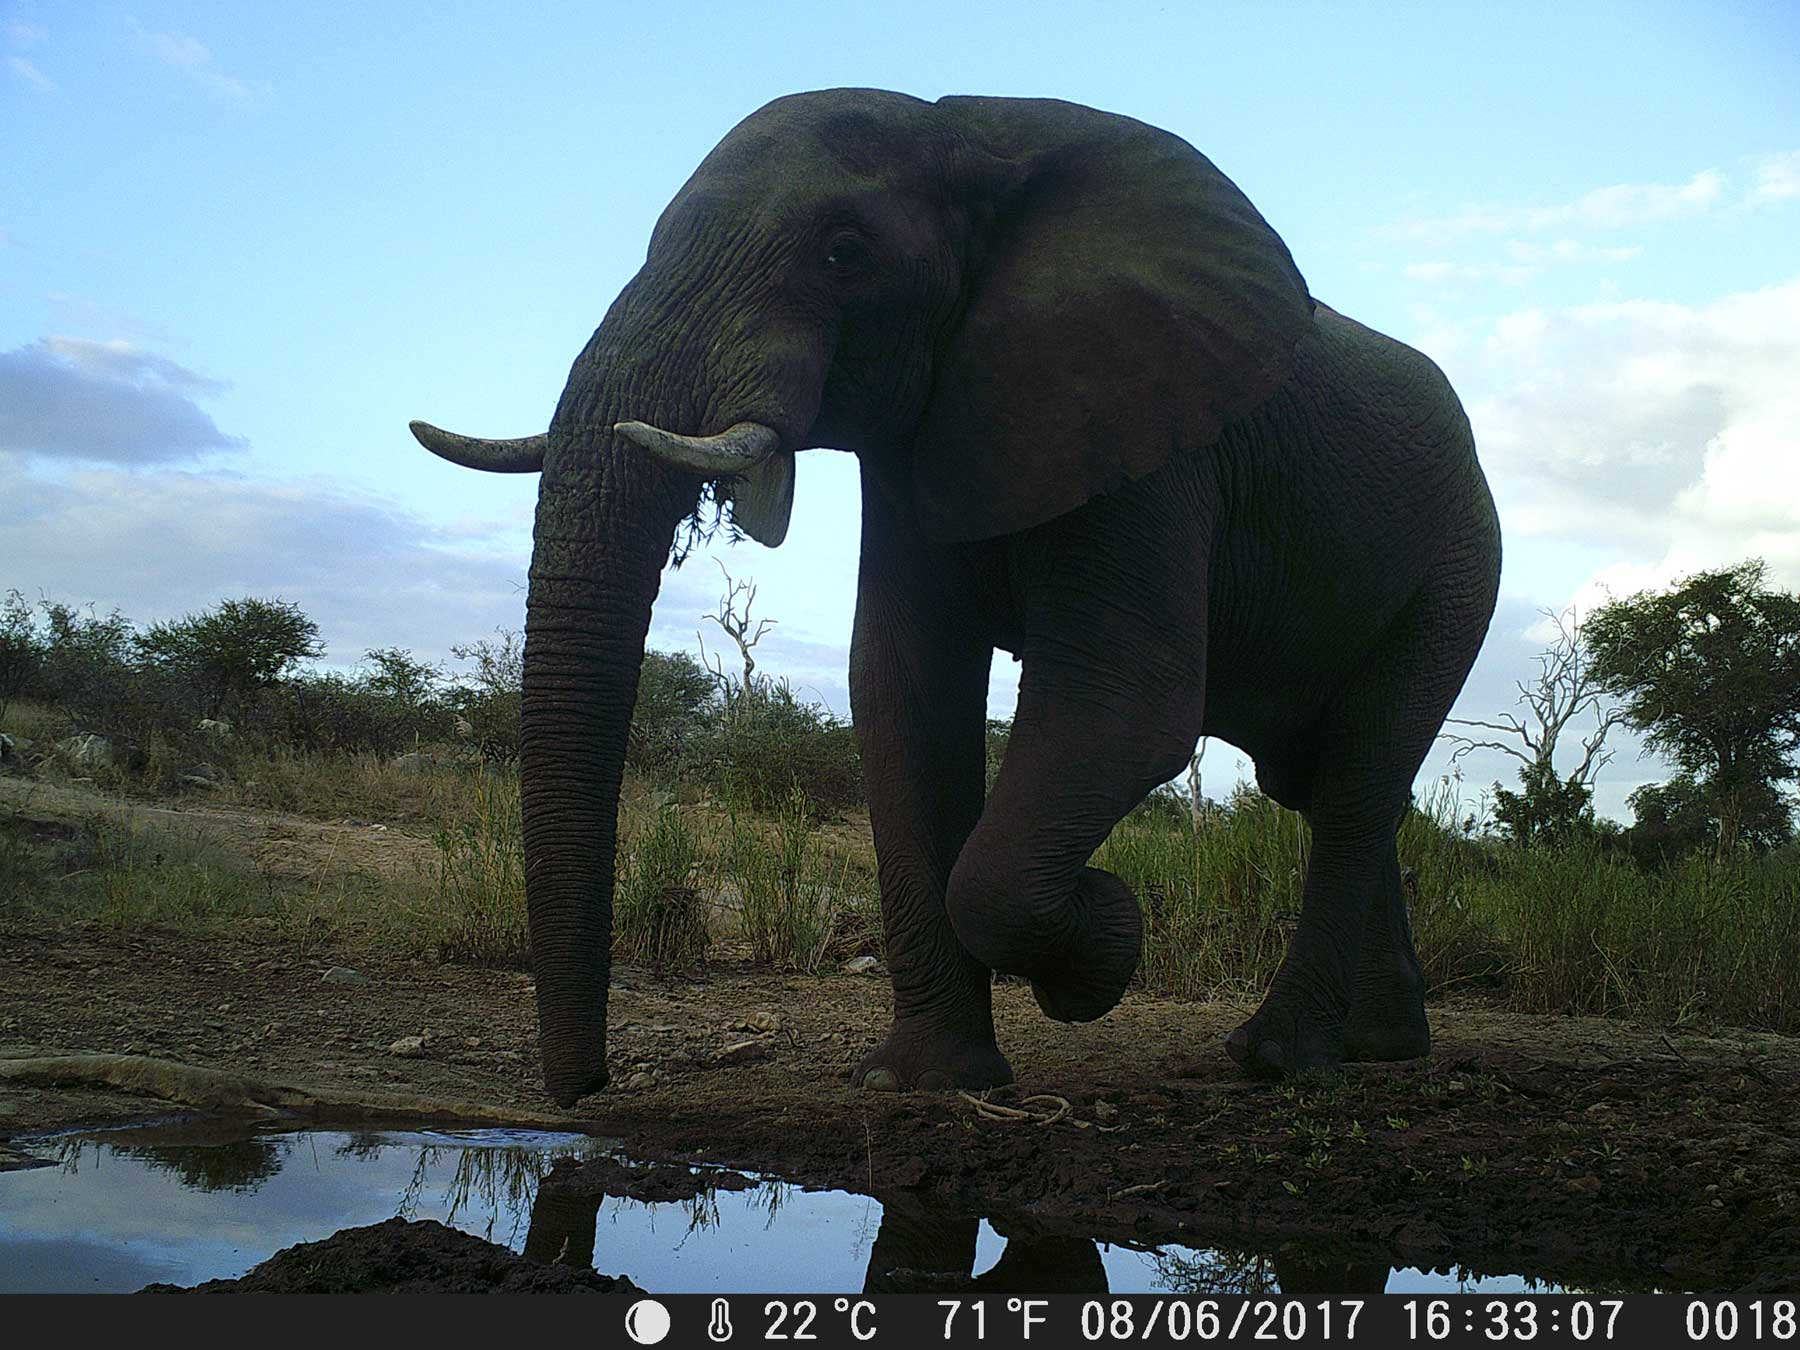 Tusker at Ezulwini Game Lodges